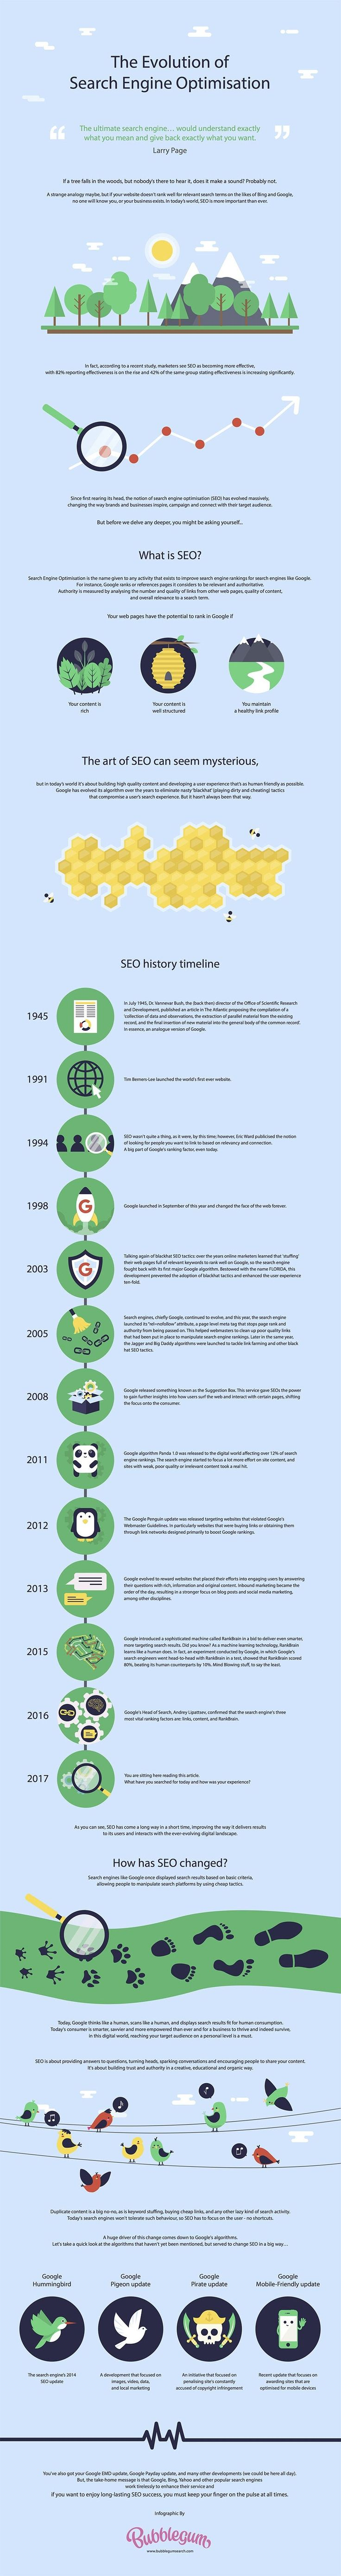 The Evolution of SEO - #Infographic